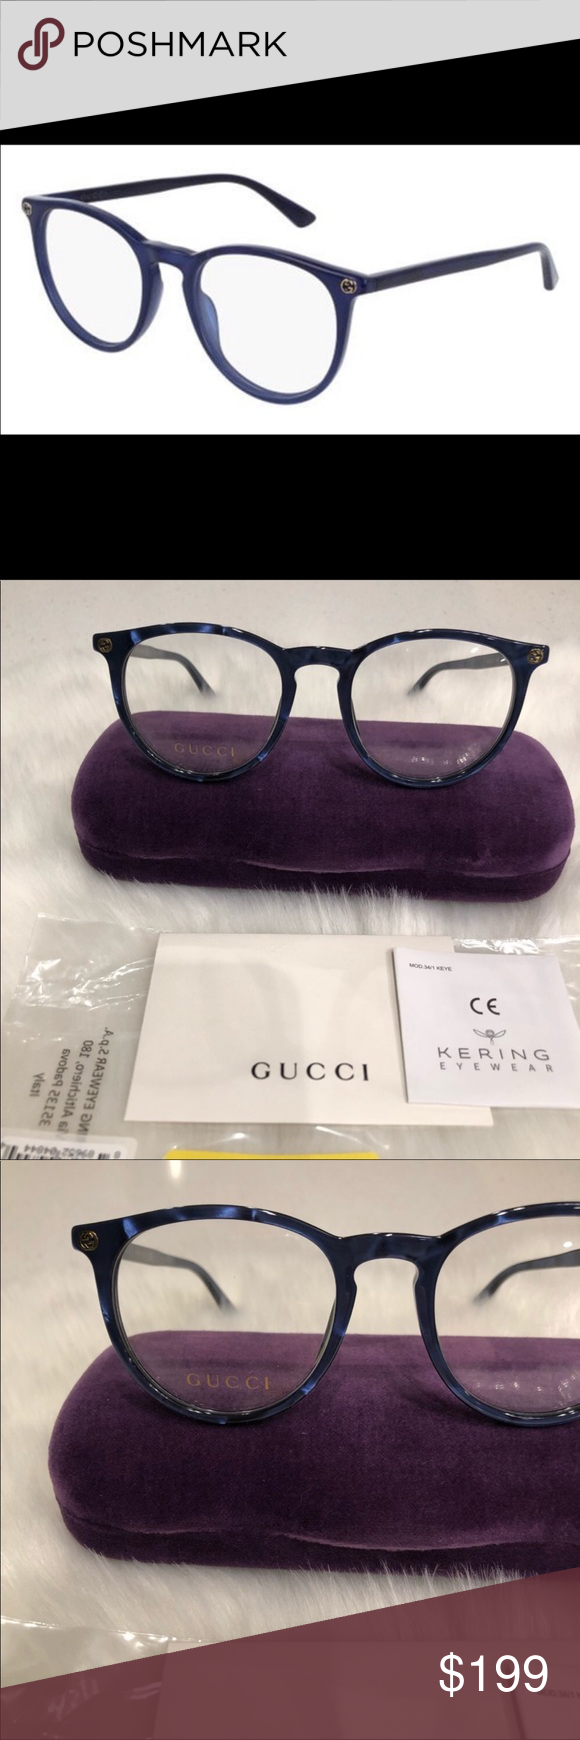 a3908819ec Gucci eyeglasses 100% NEW AND AUTHENTIC GUCCI EYEGLASSES BLUE FRAMES WITH  CLEAR DEMO LENSES.